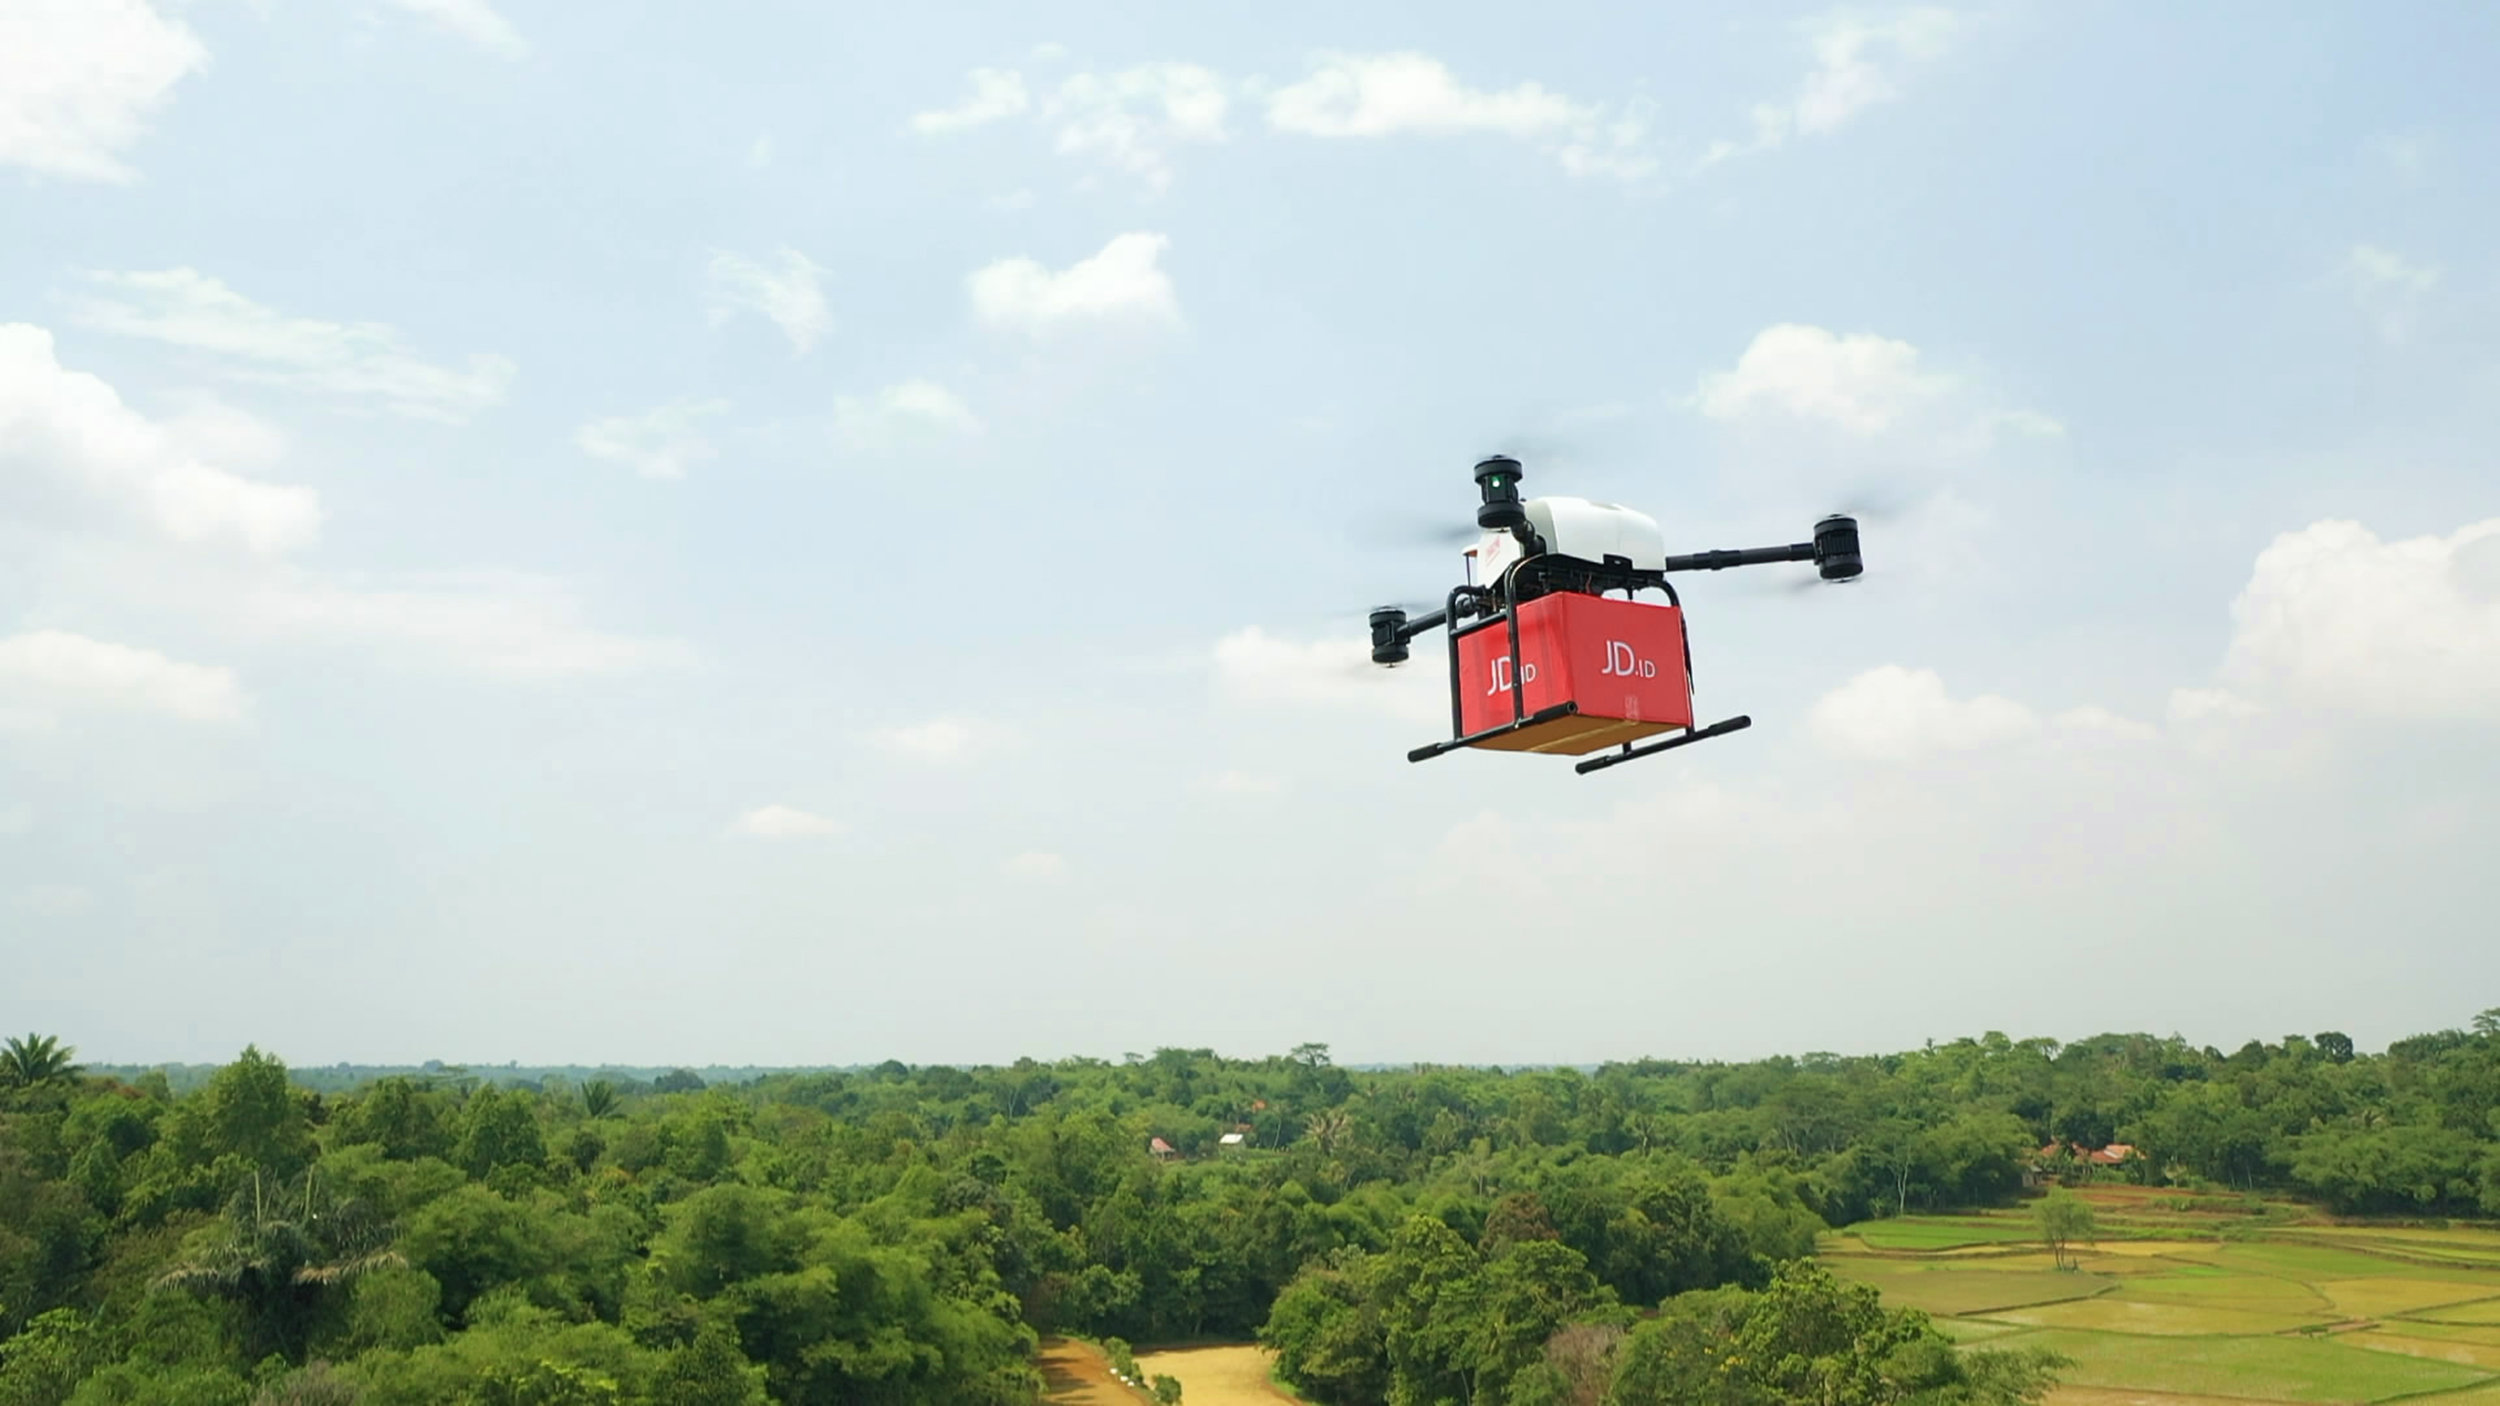 …same Hour instead of same Day Delivery… - Logistic system, which already use drone in rural areas and deliver . You can even order a coffee online and get